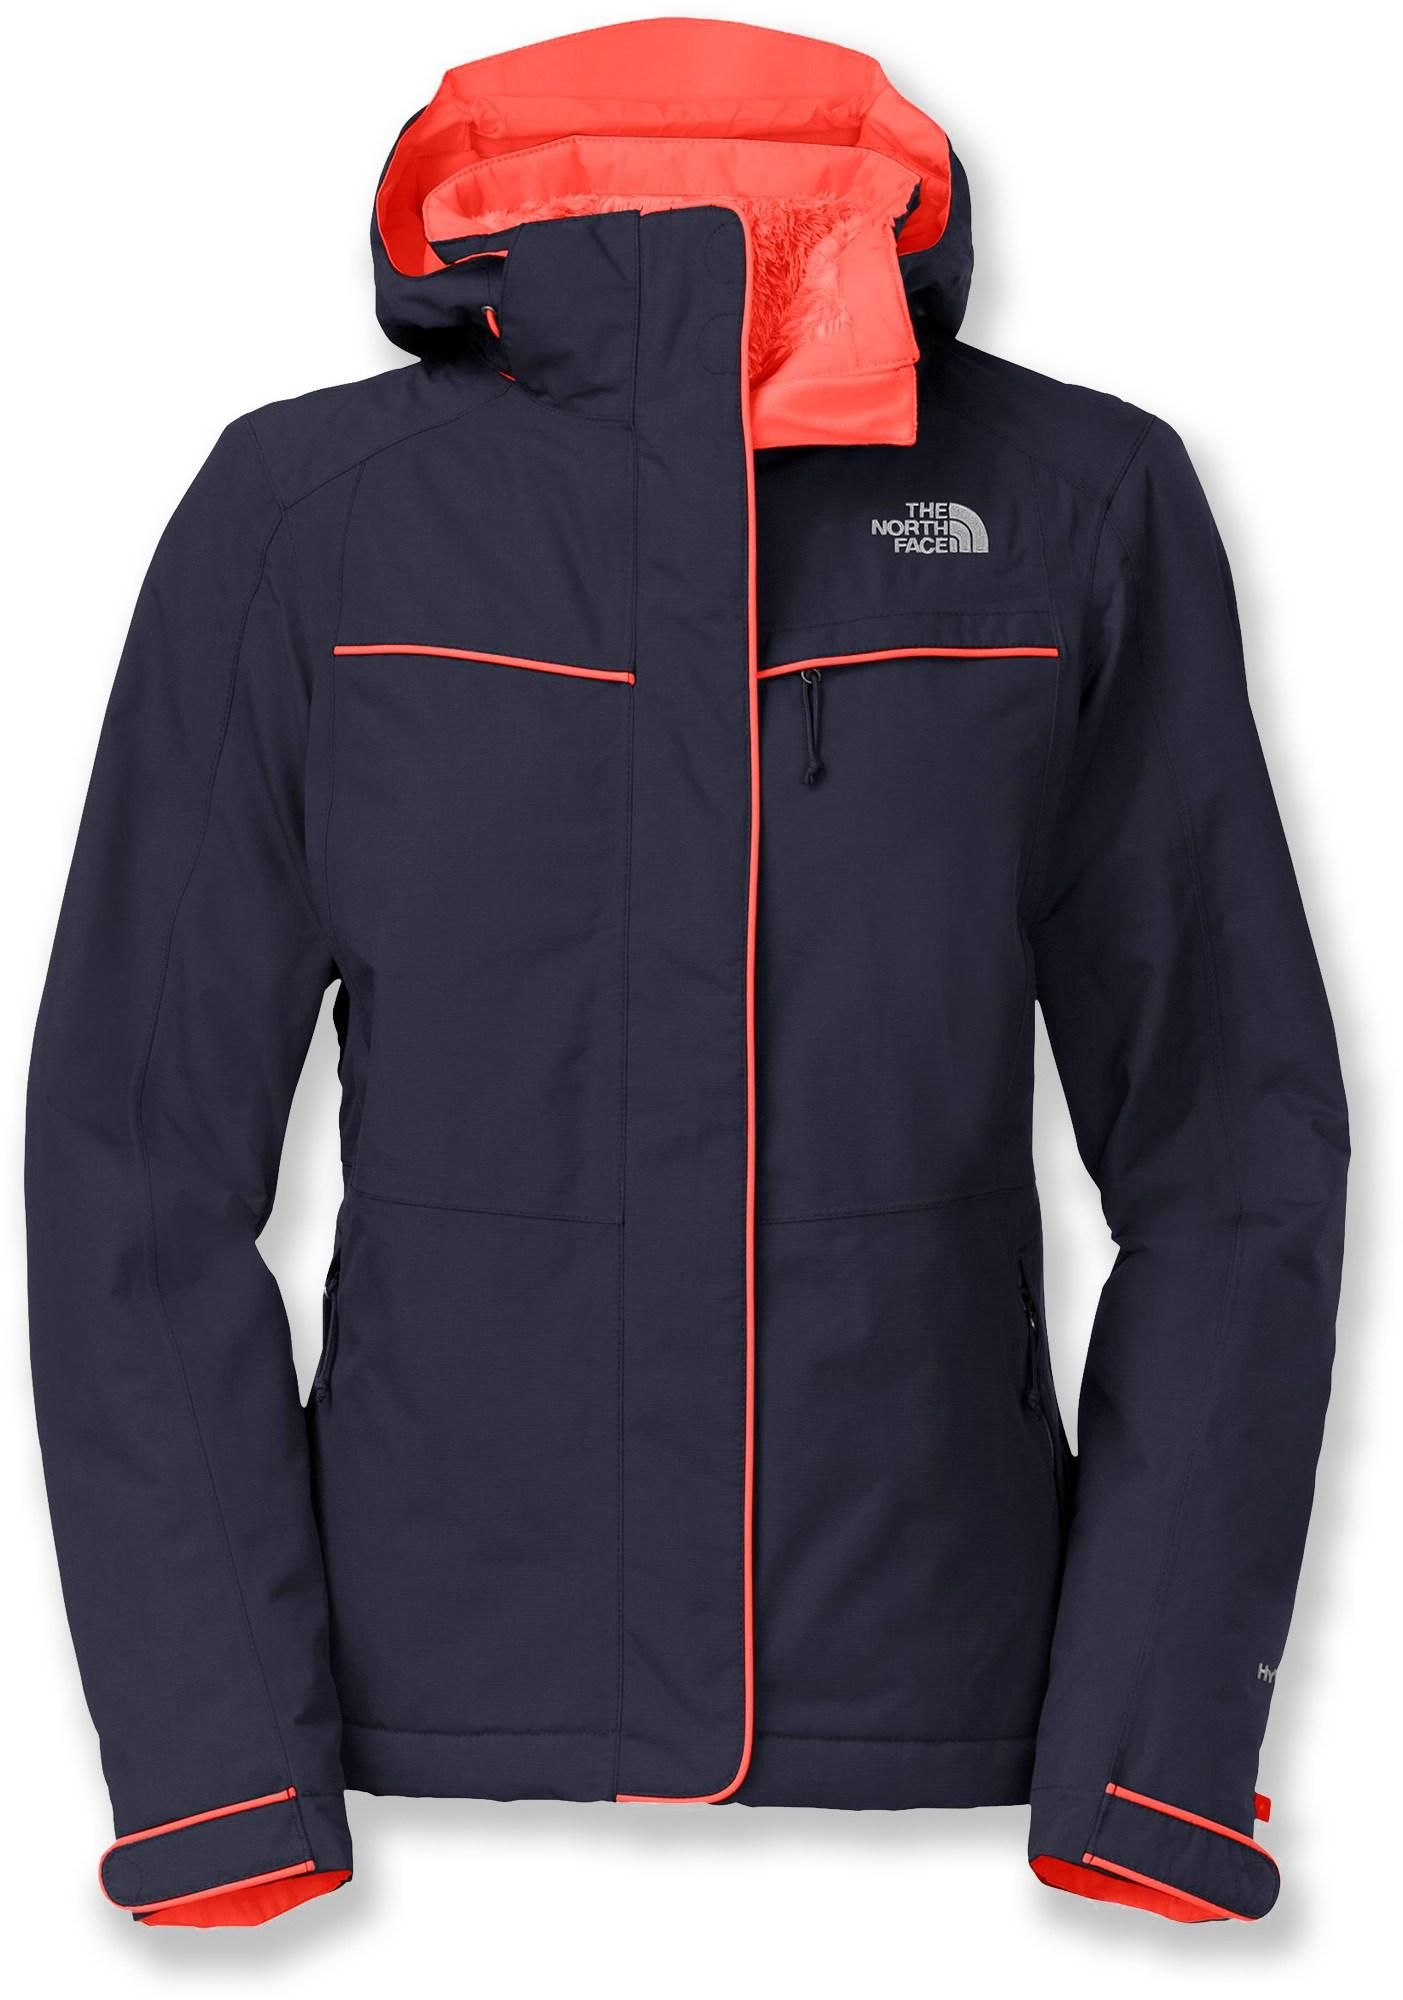 The keeps and on Inlux North Face dry you jacket warm insulated ZXwXH8qx